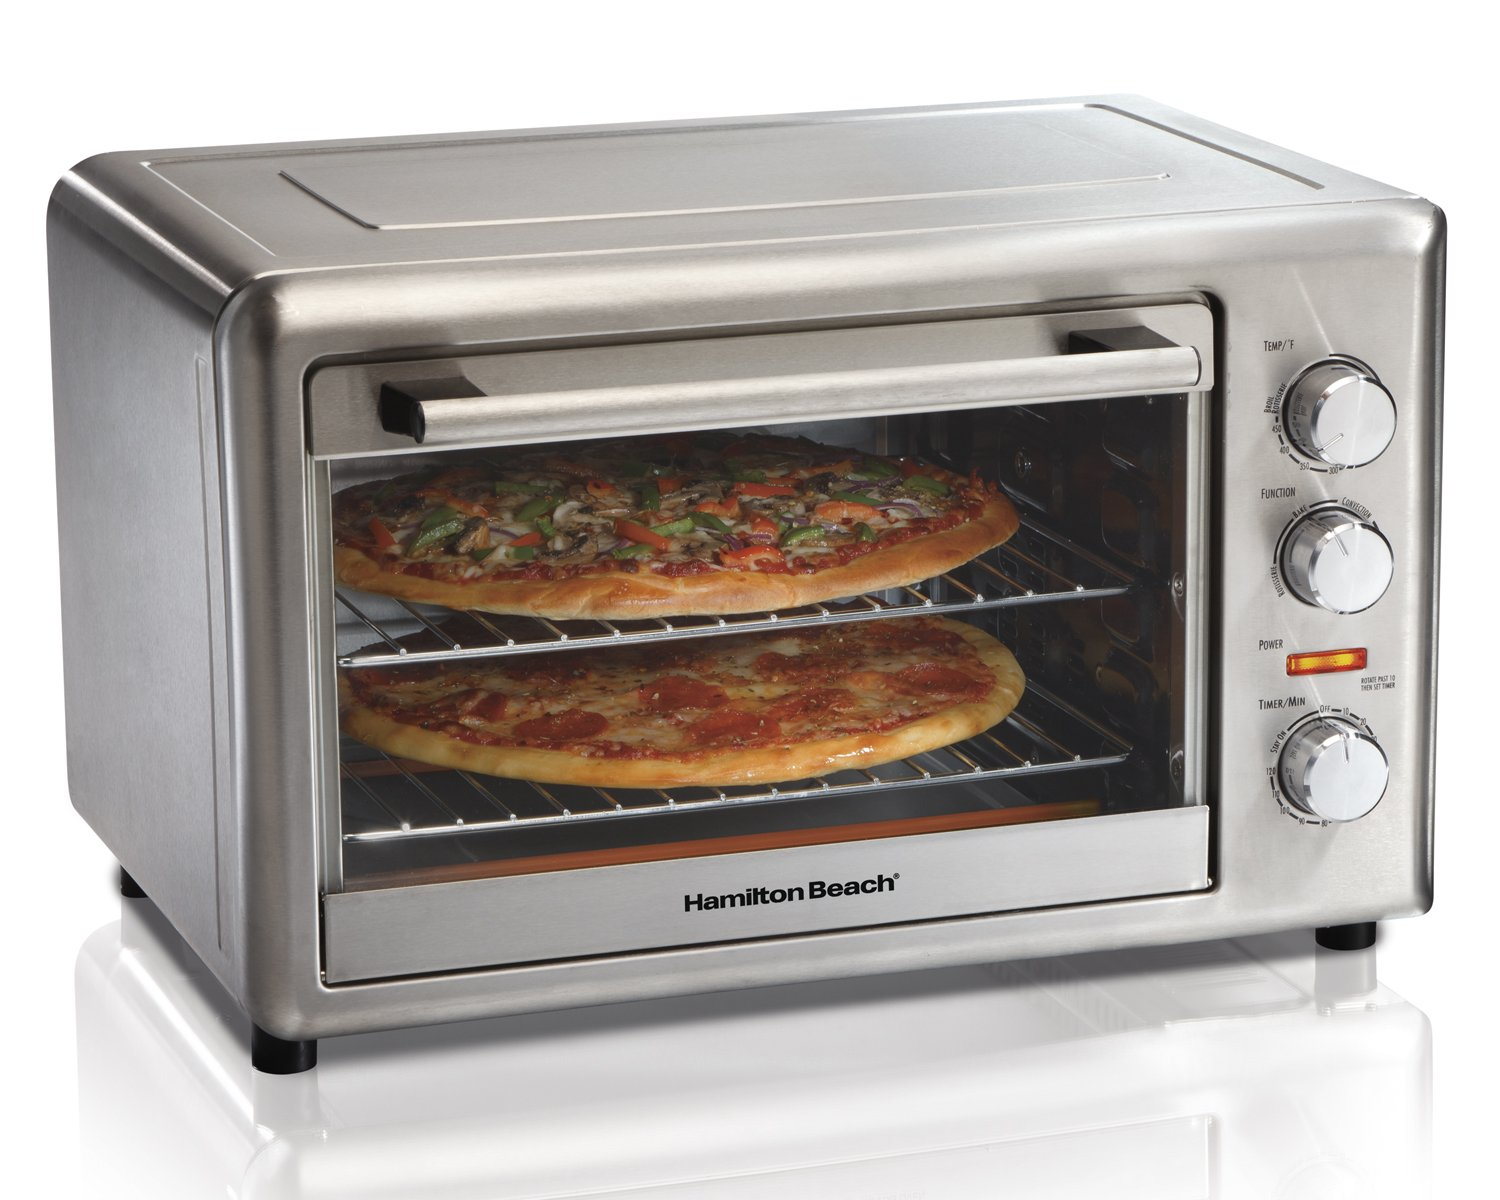 Hamilton Beach 31103C Countertop Oven with Convection and Rotisserie, Stainless Steel